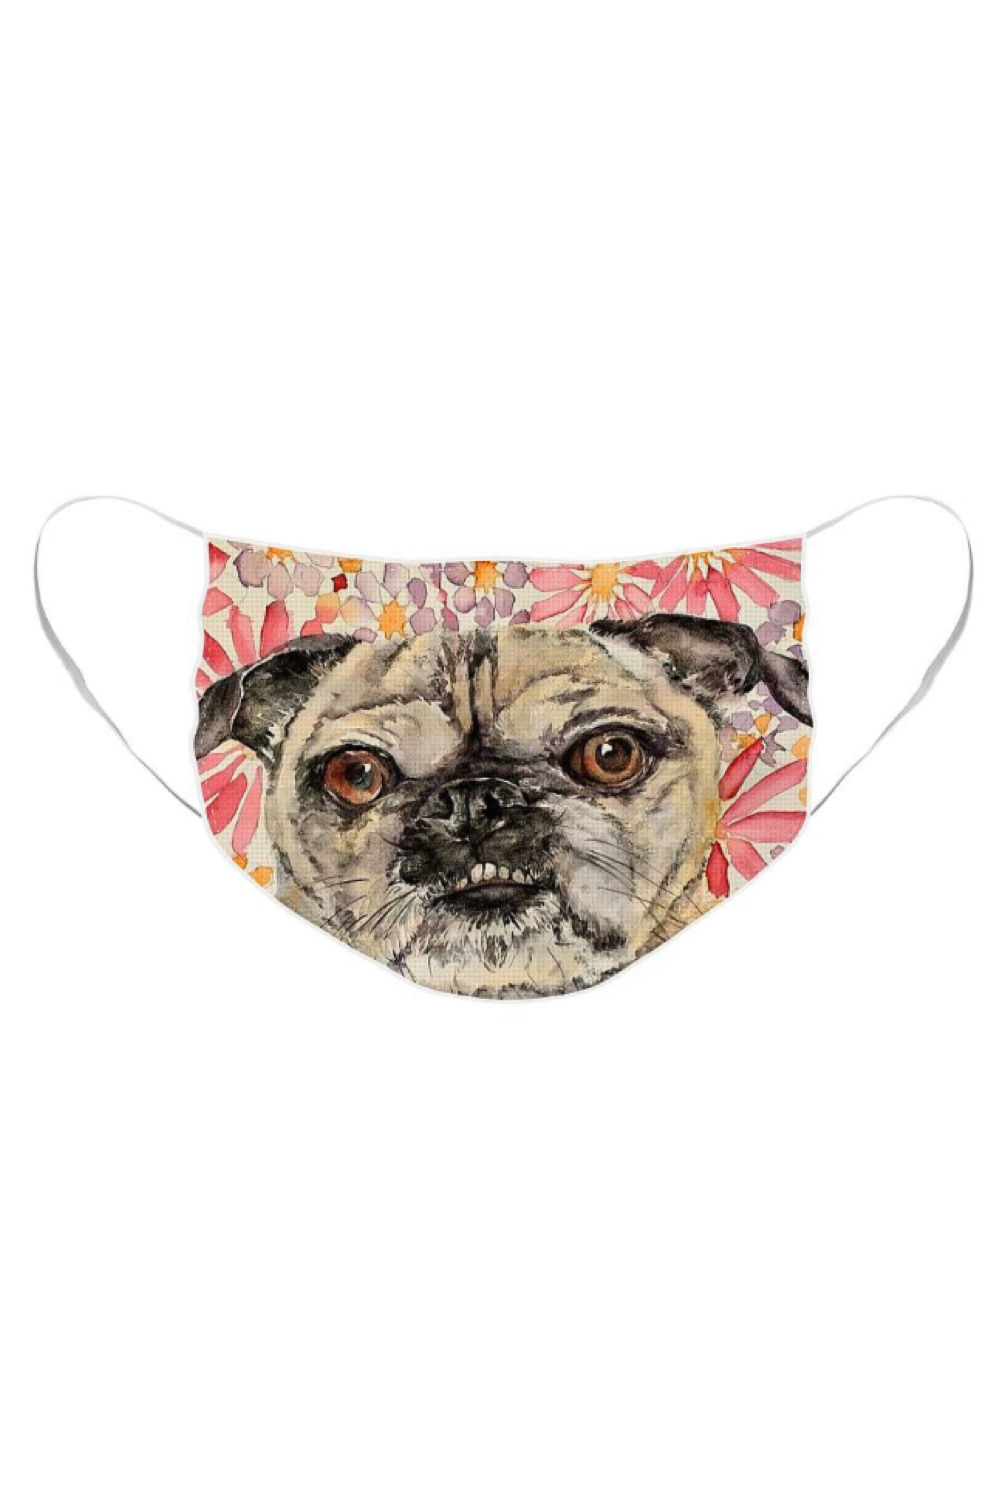 French Bulldog Face Mask For Sale By Liana Yarckin Masks For Sale French Bulldog Mask Design